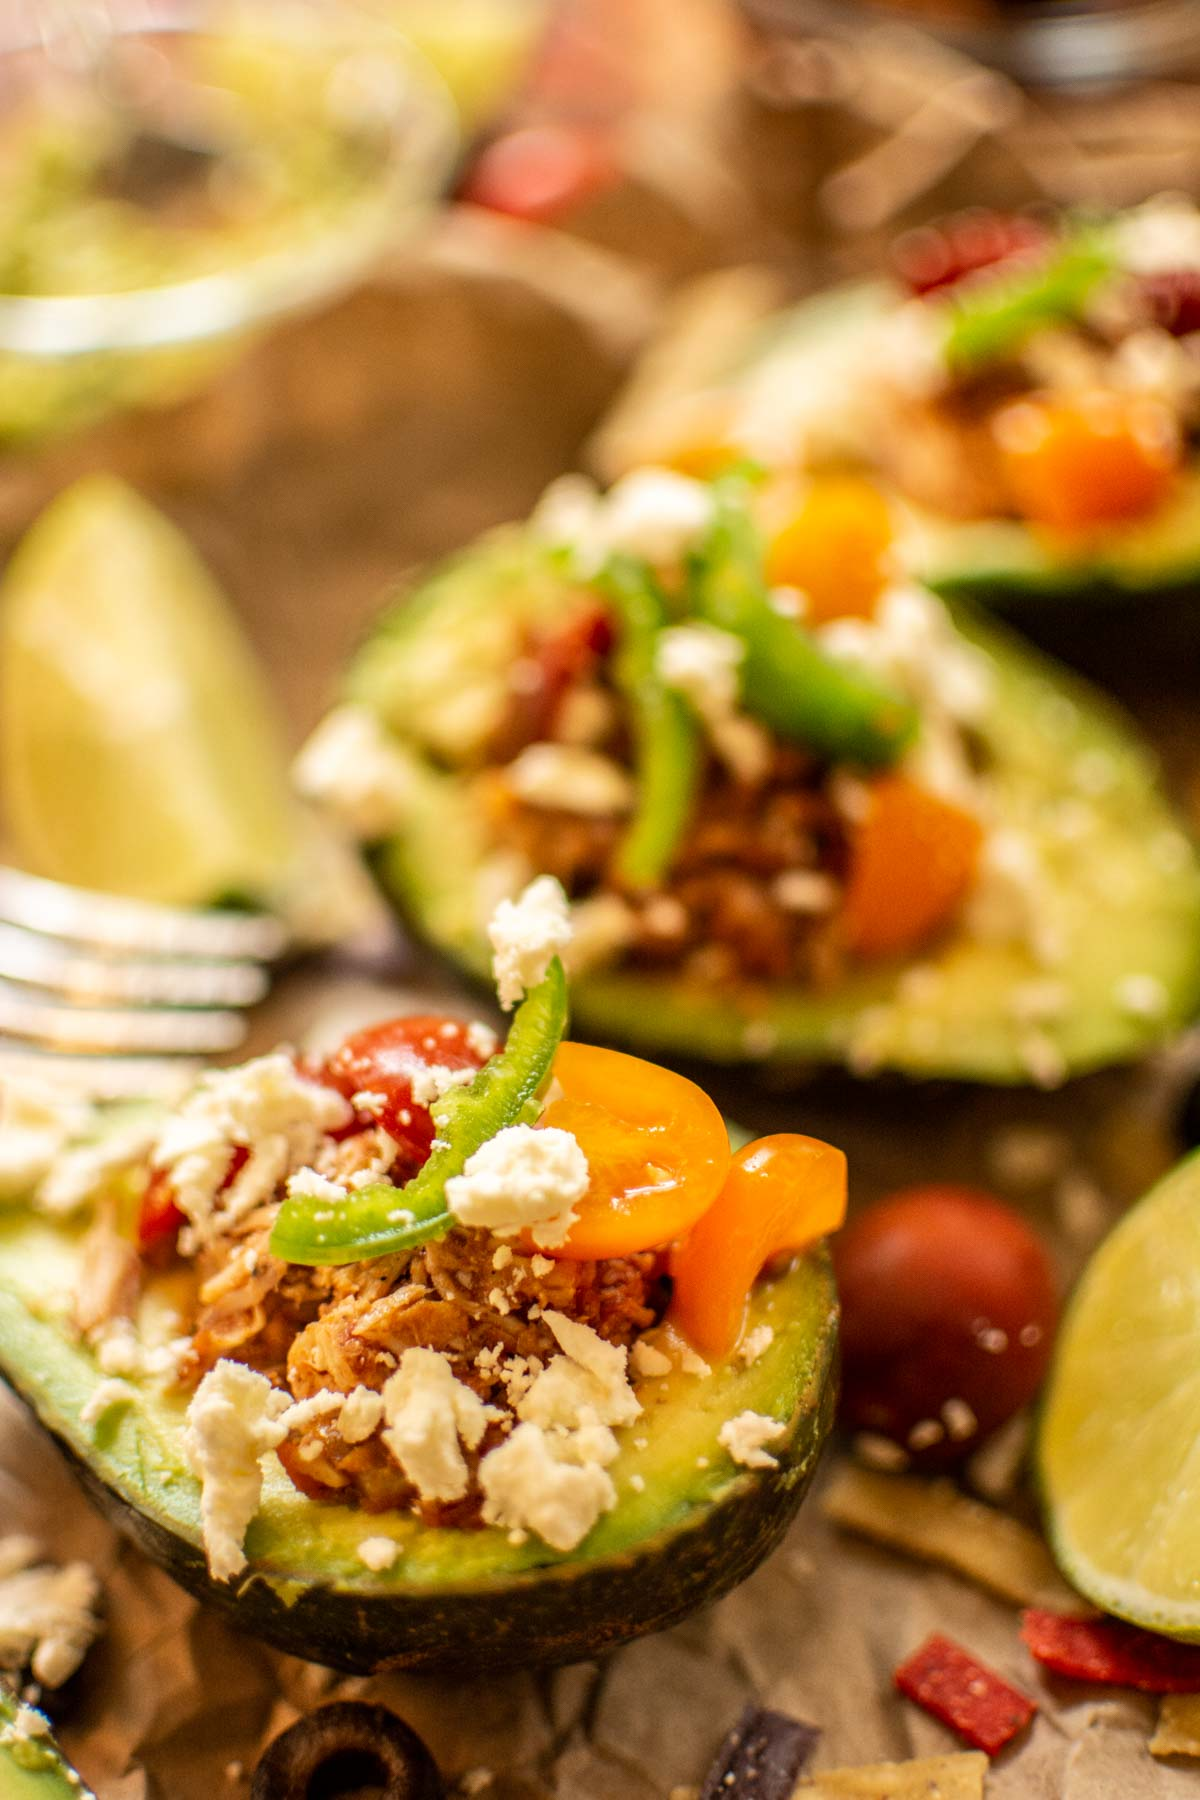 avocados sliced in half, pitted and filled with a slow cooked chicken with limes, feta cheese and tomatoes.